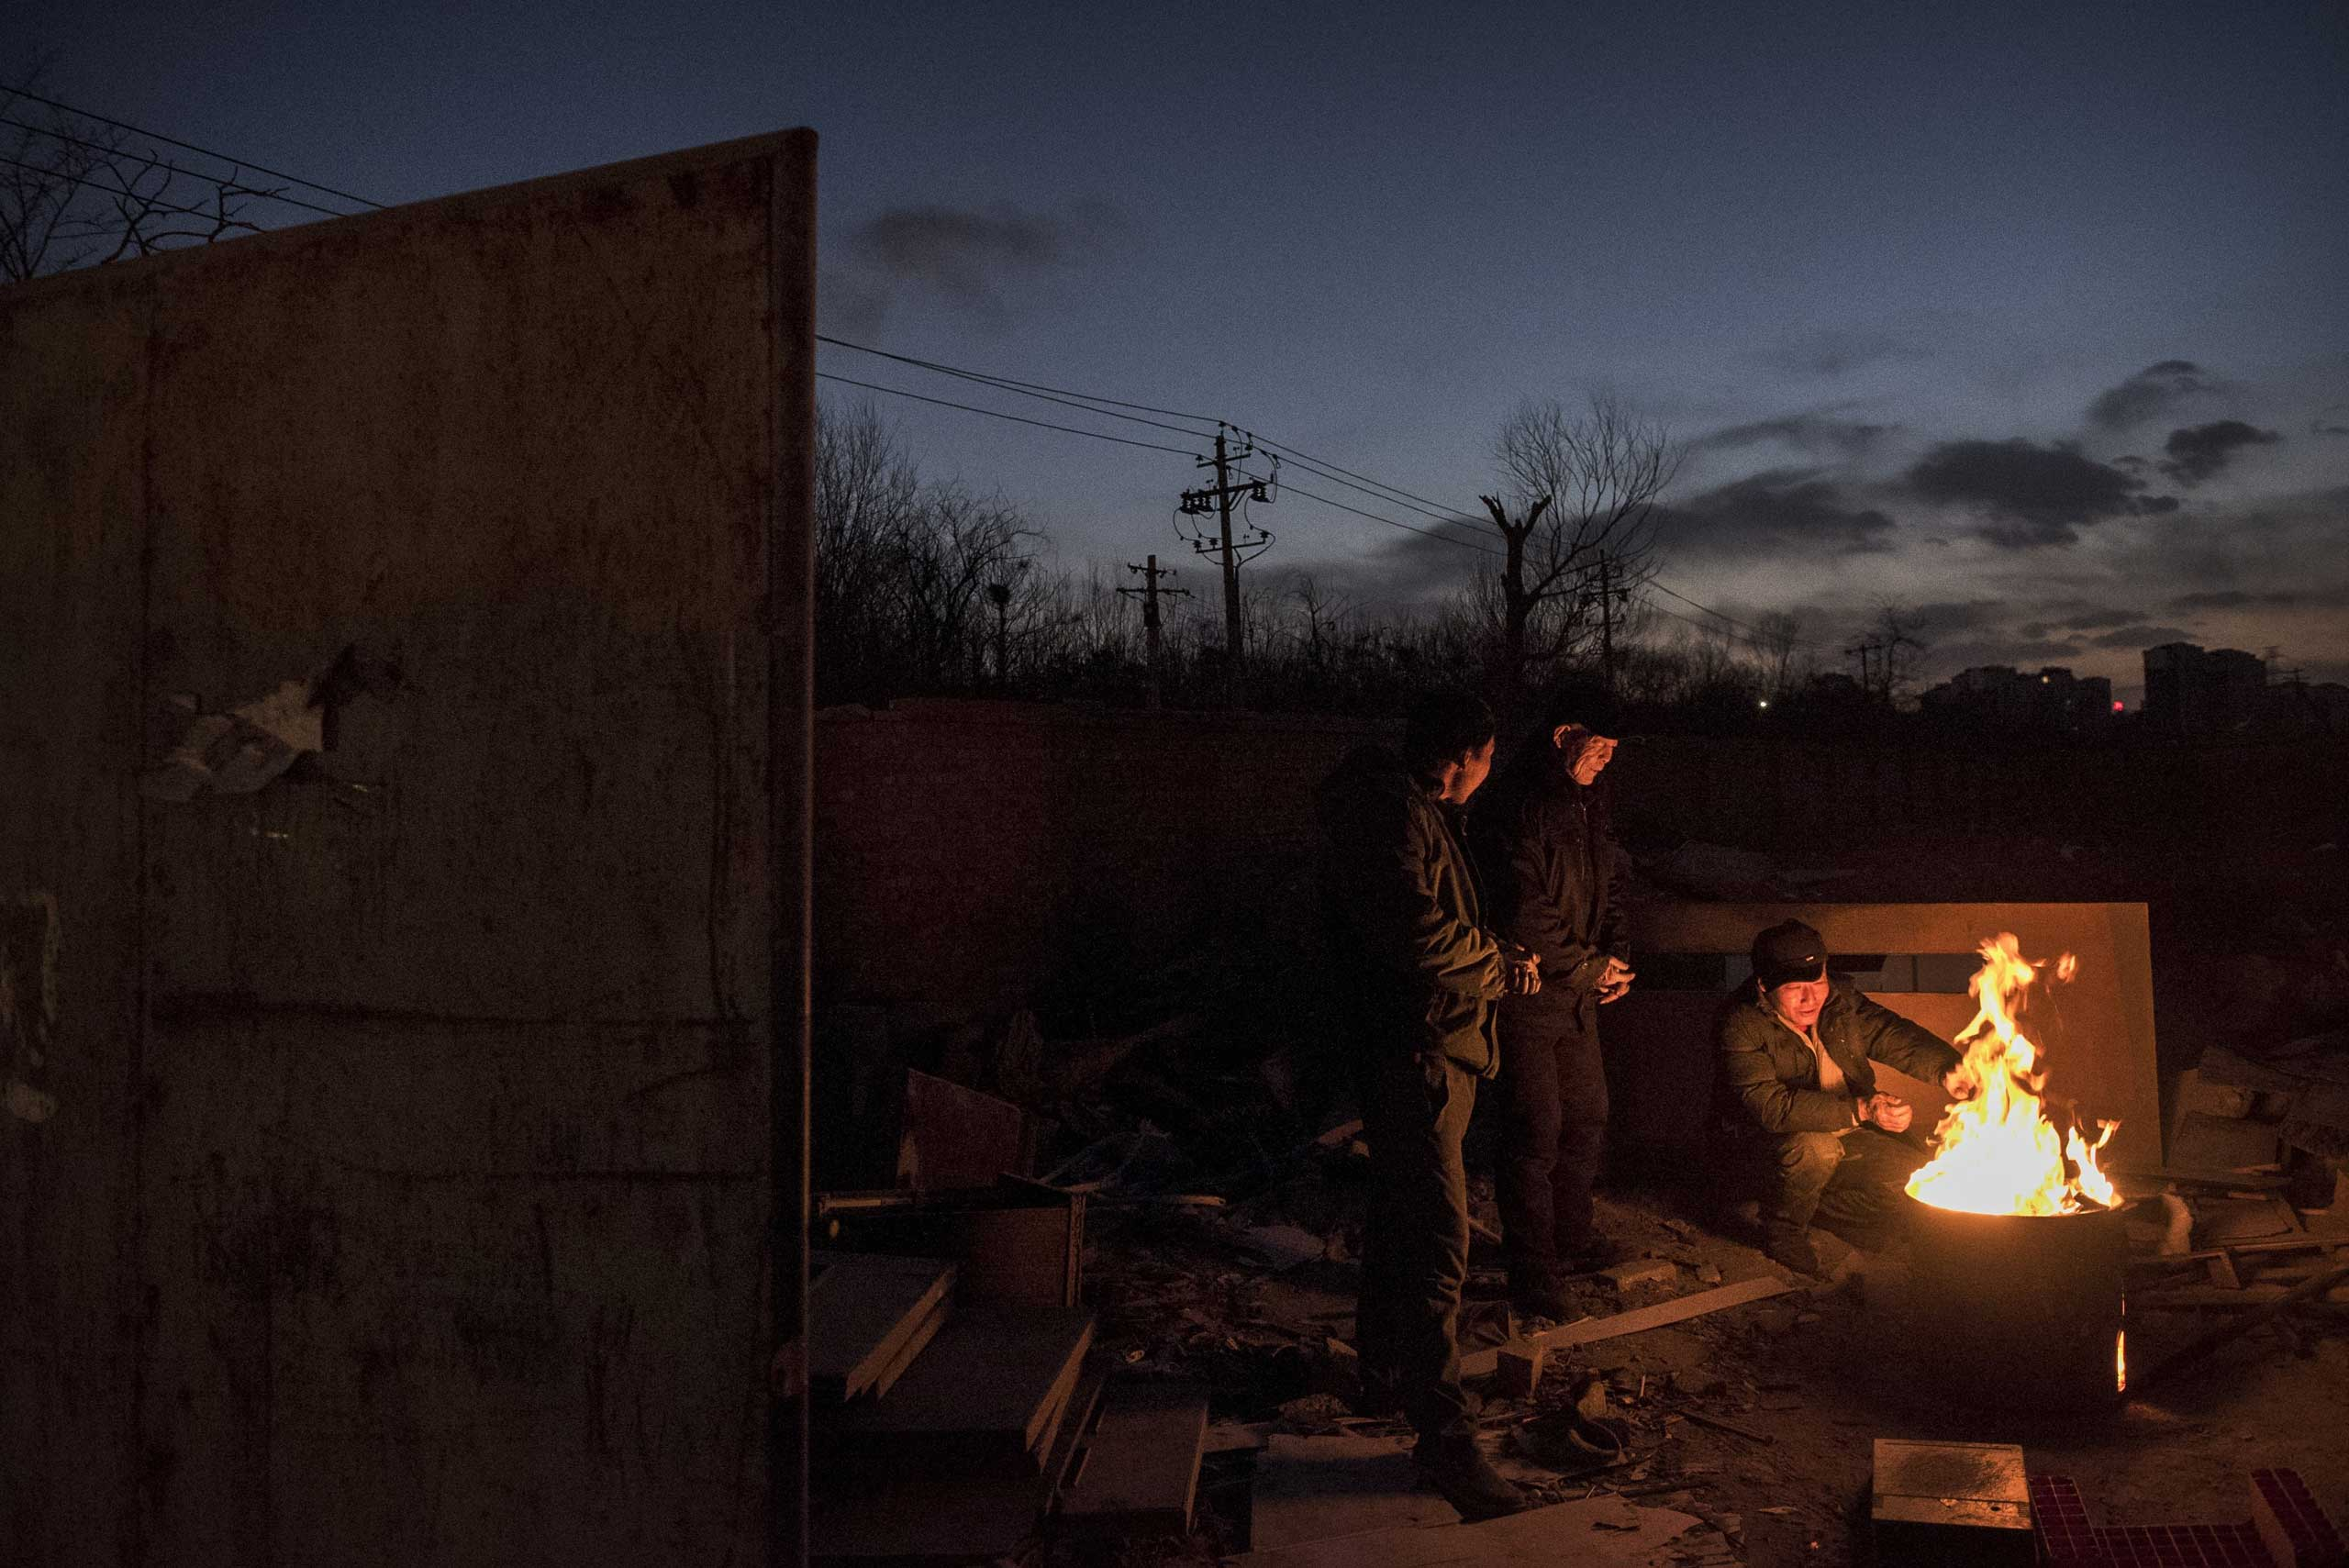 Laborers stay warm on a fire as they wait for goods to be recycled in the Dong Xiao Kou village on Dec. 12, 2014 in Beijing.